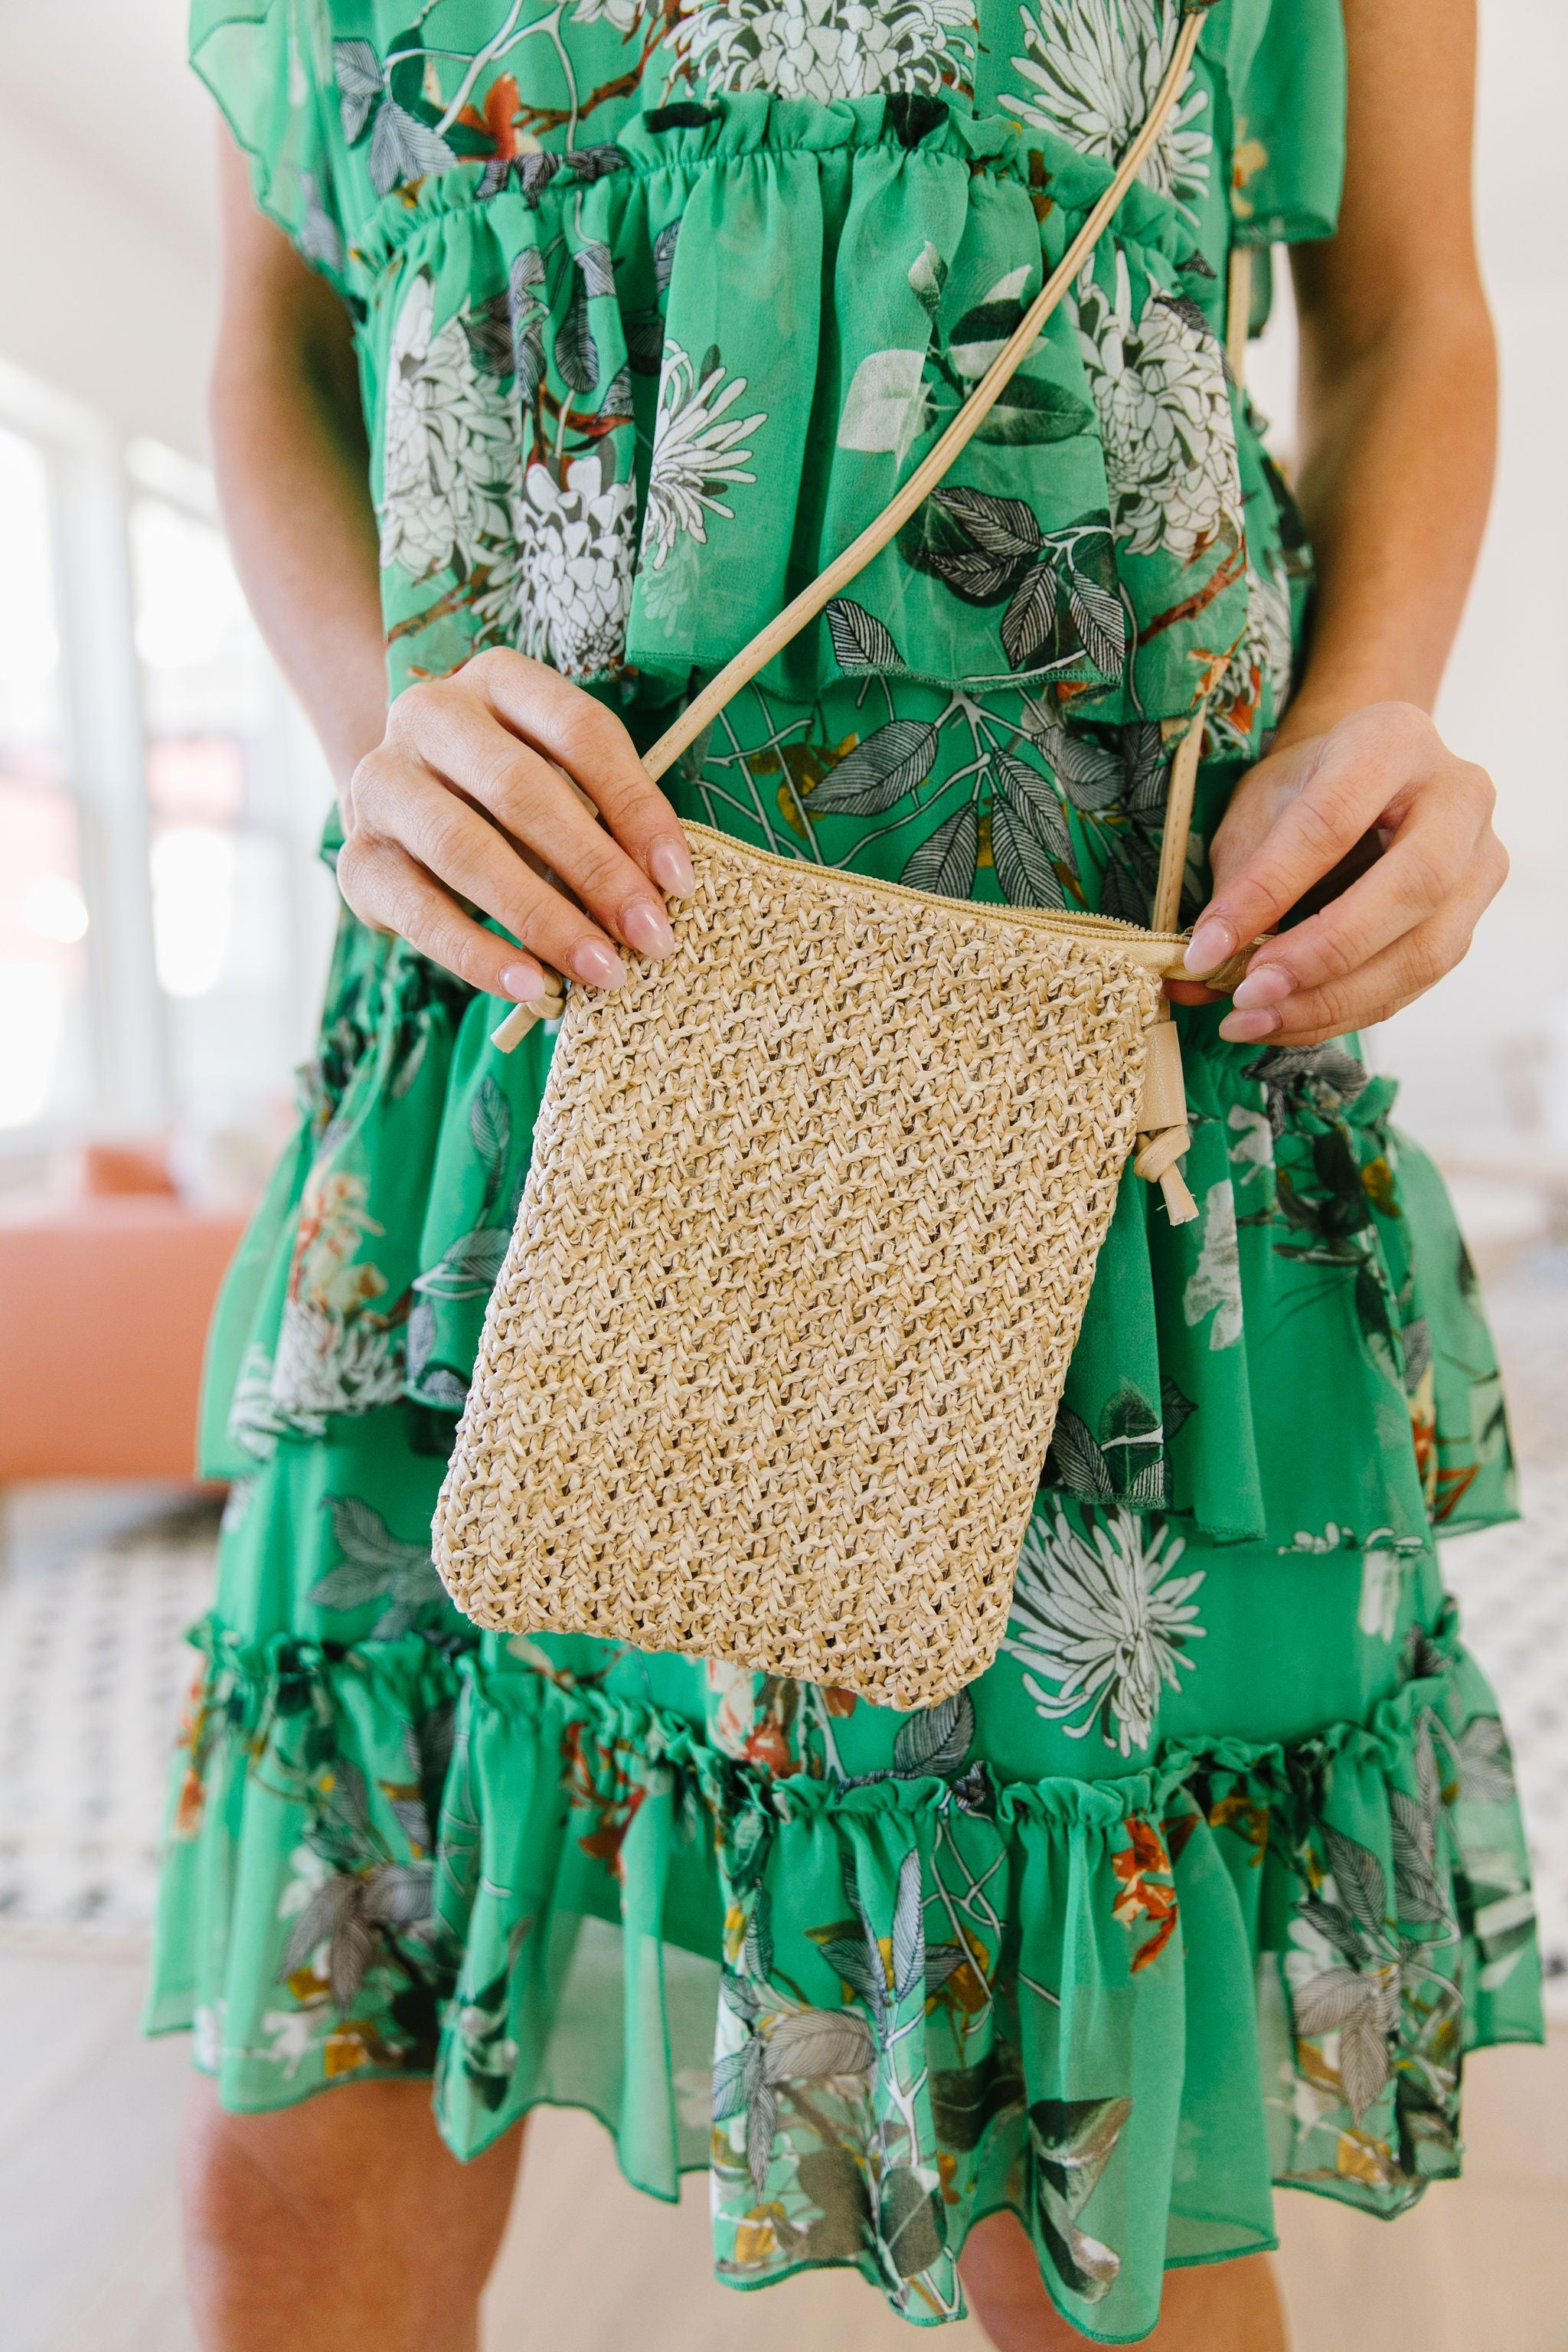 Weave Your Troubles Behind Woven Cell Phone Bag